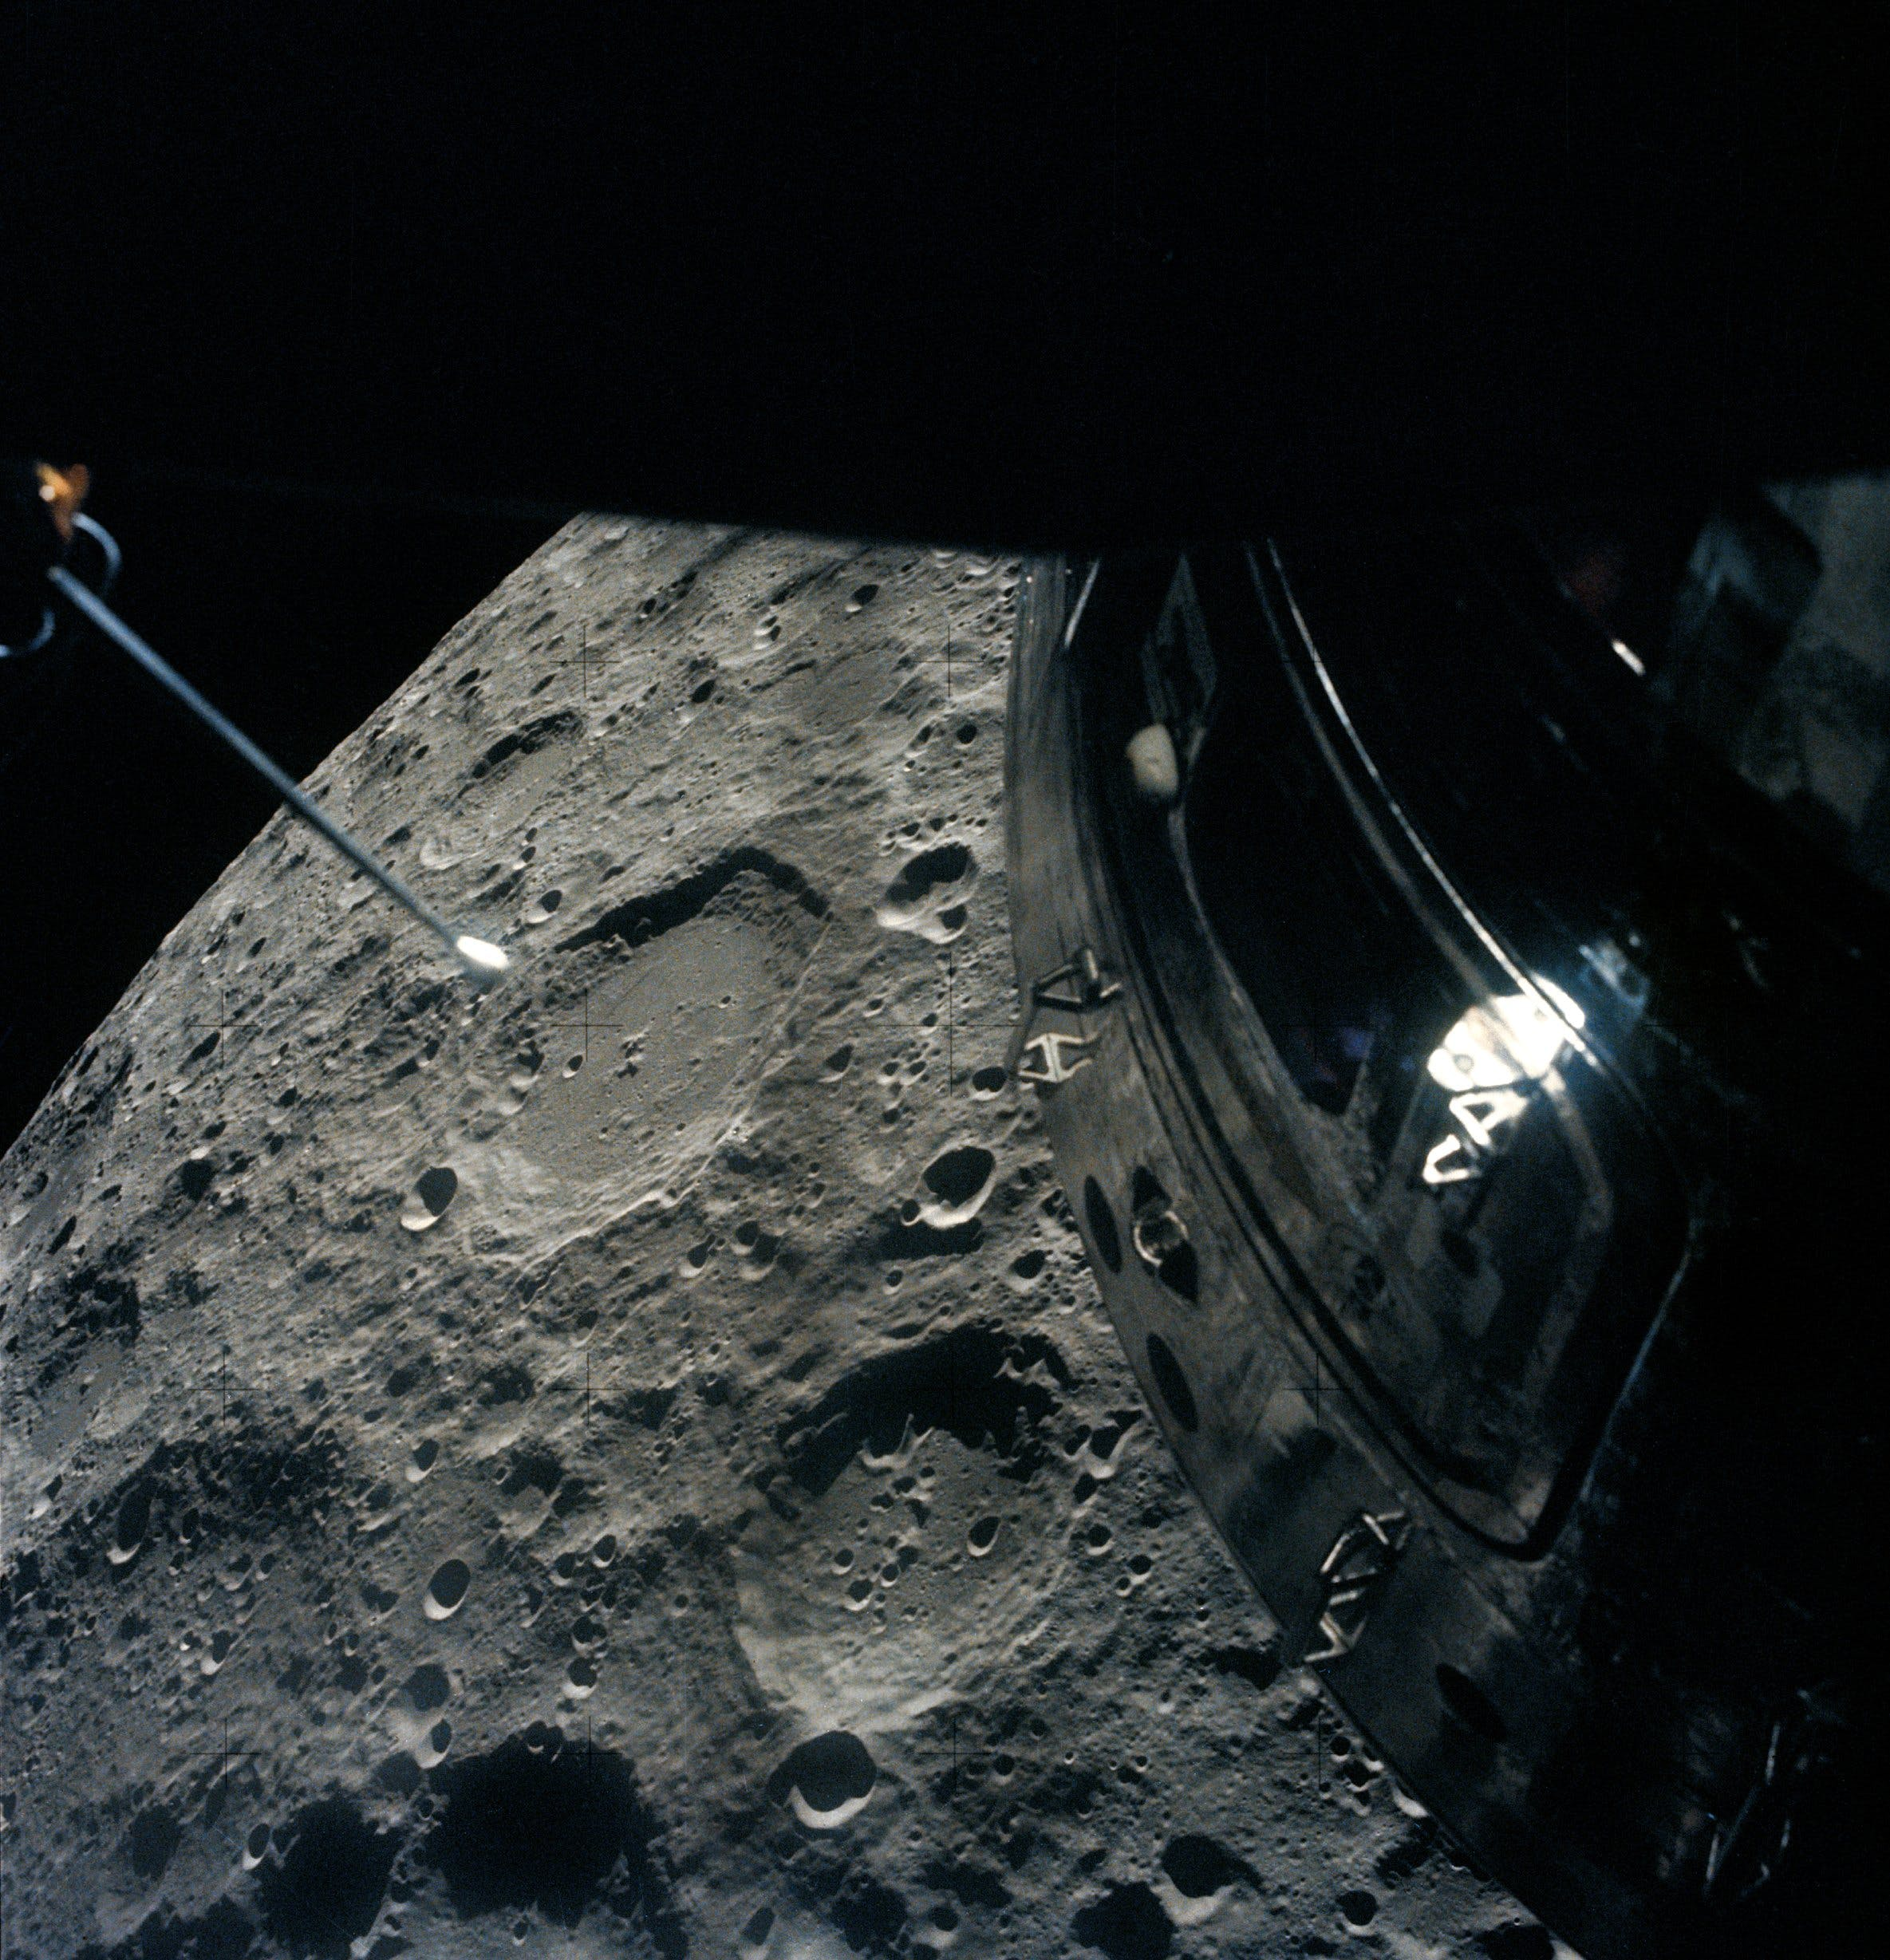 Moon, as seen by the Apollo 13 crew